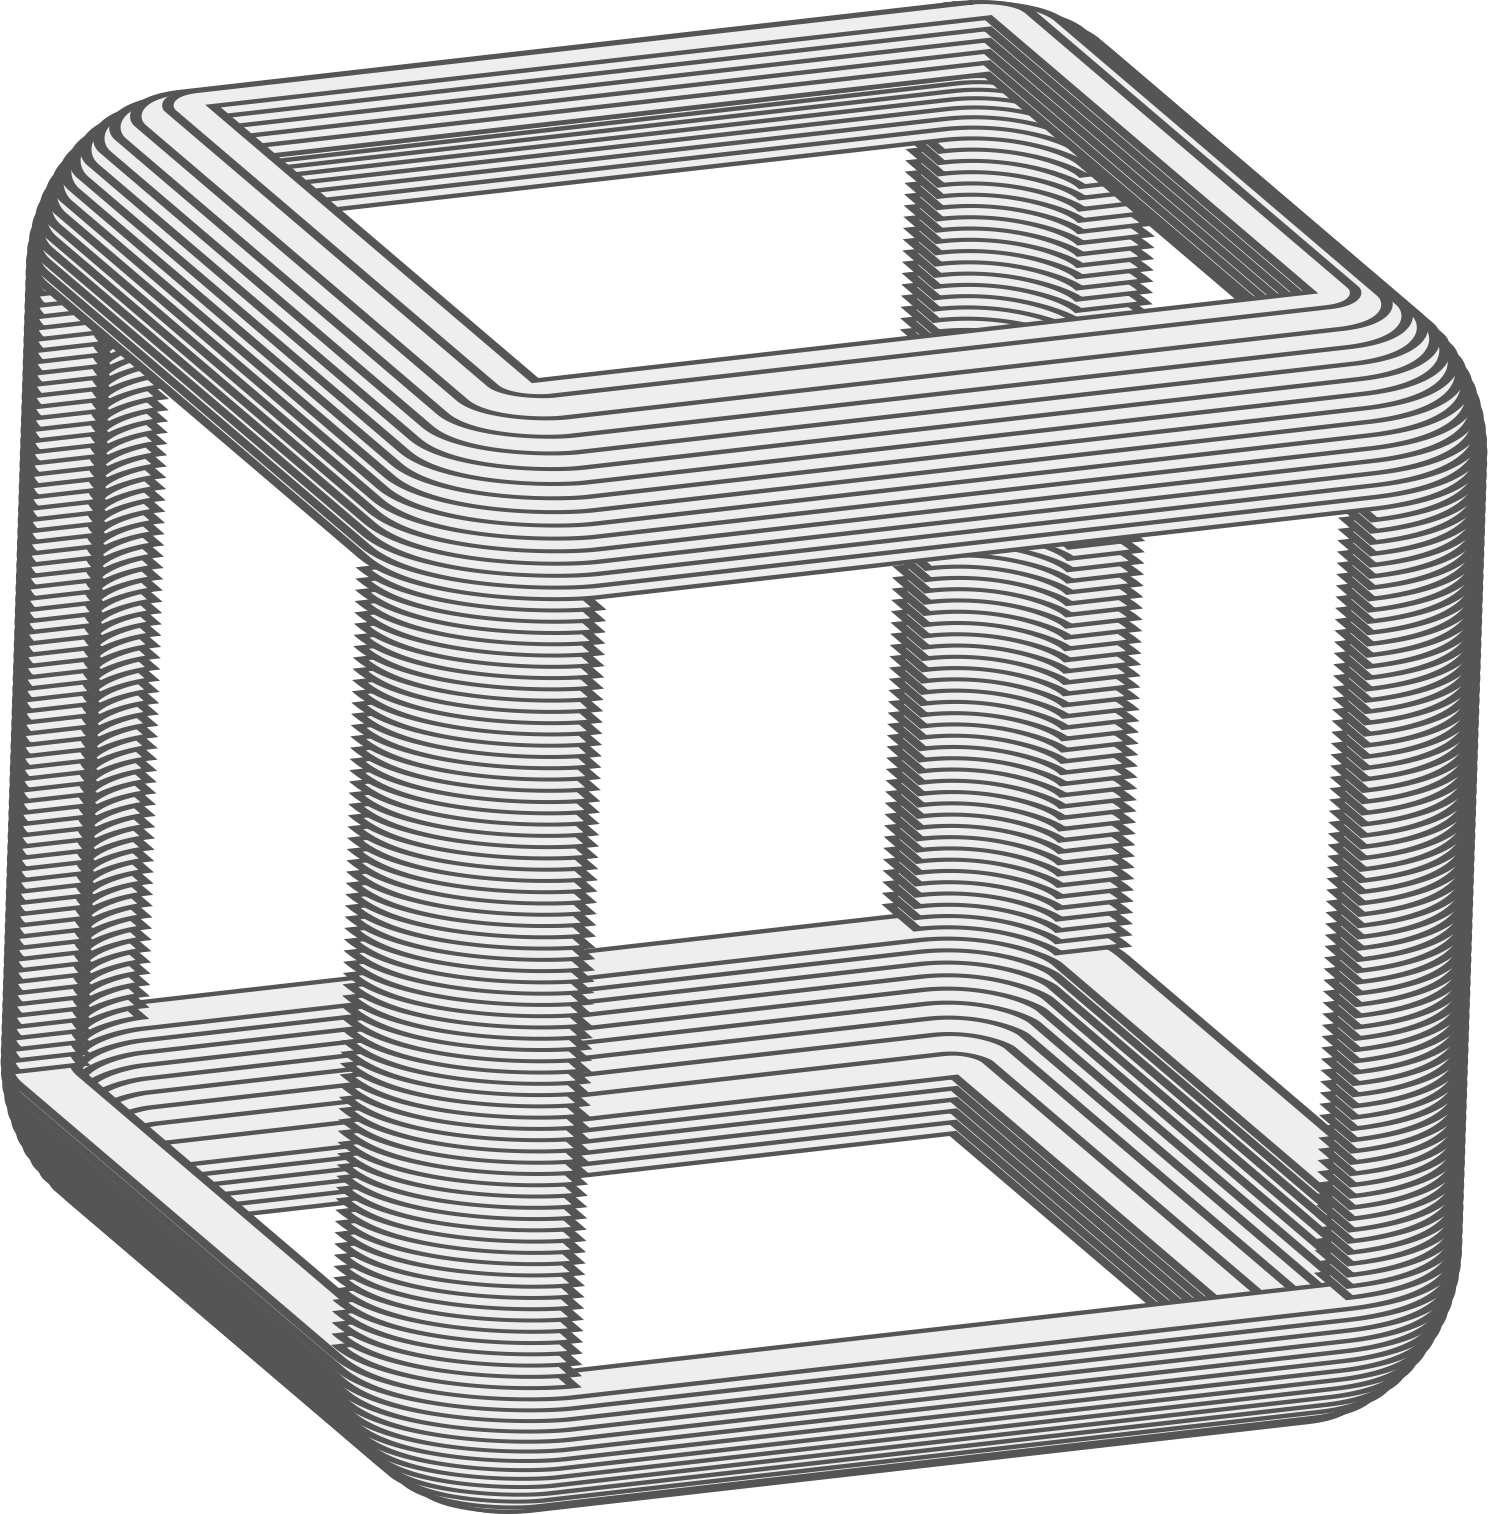 Animated Hollow Cube by jarda